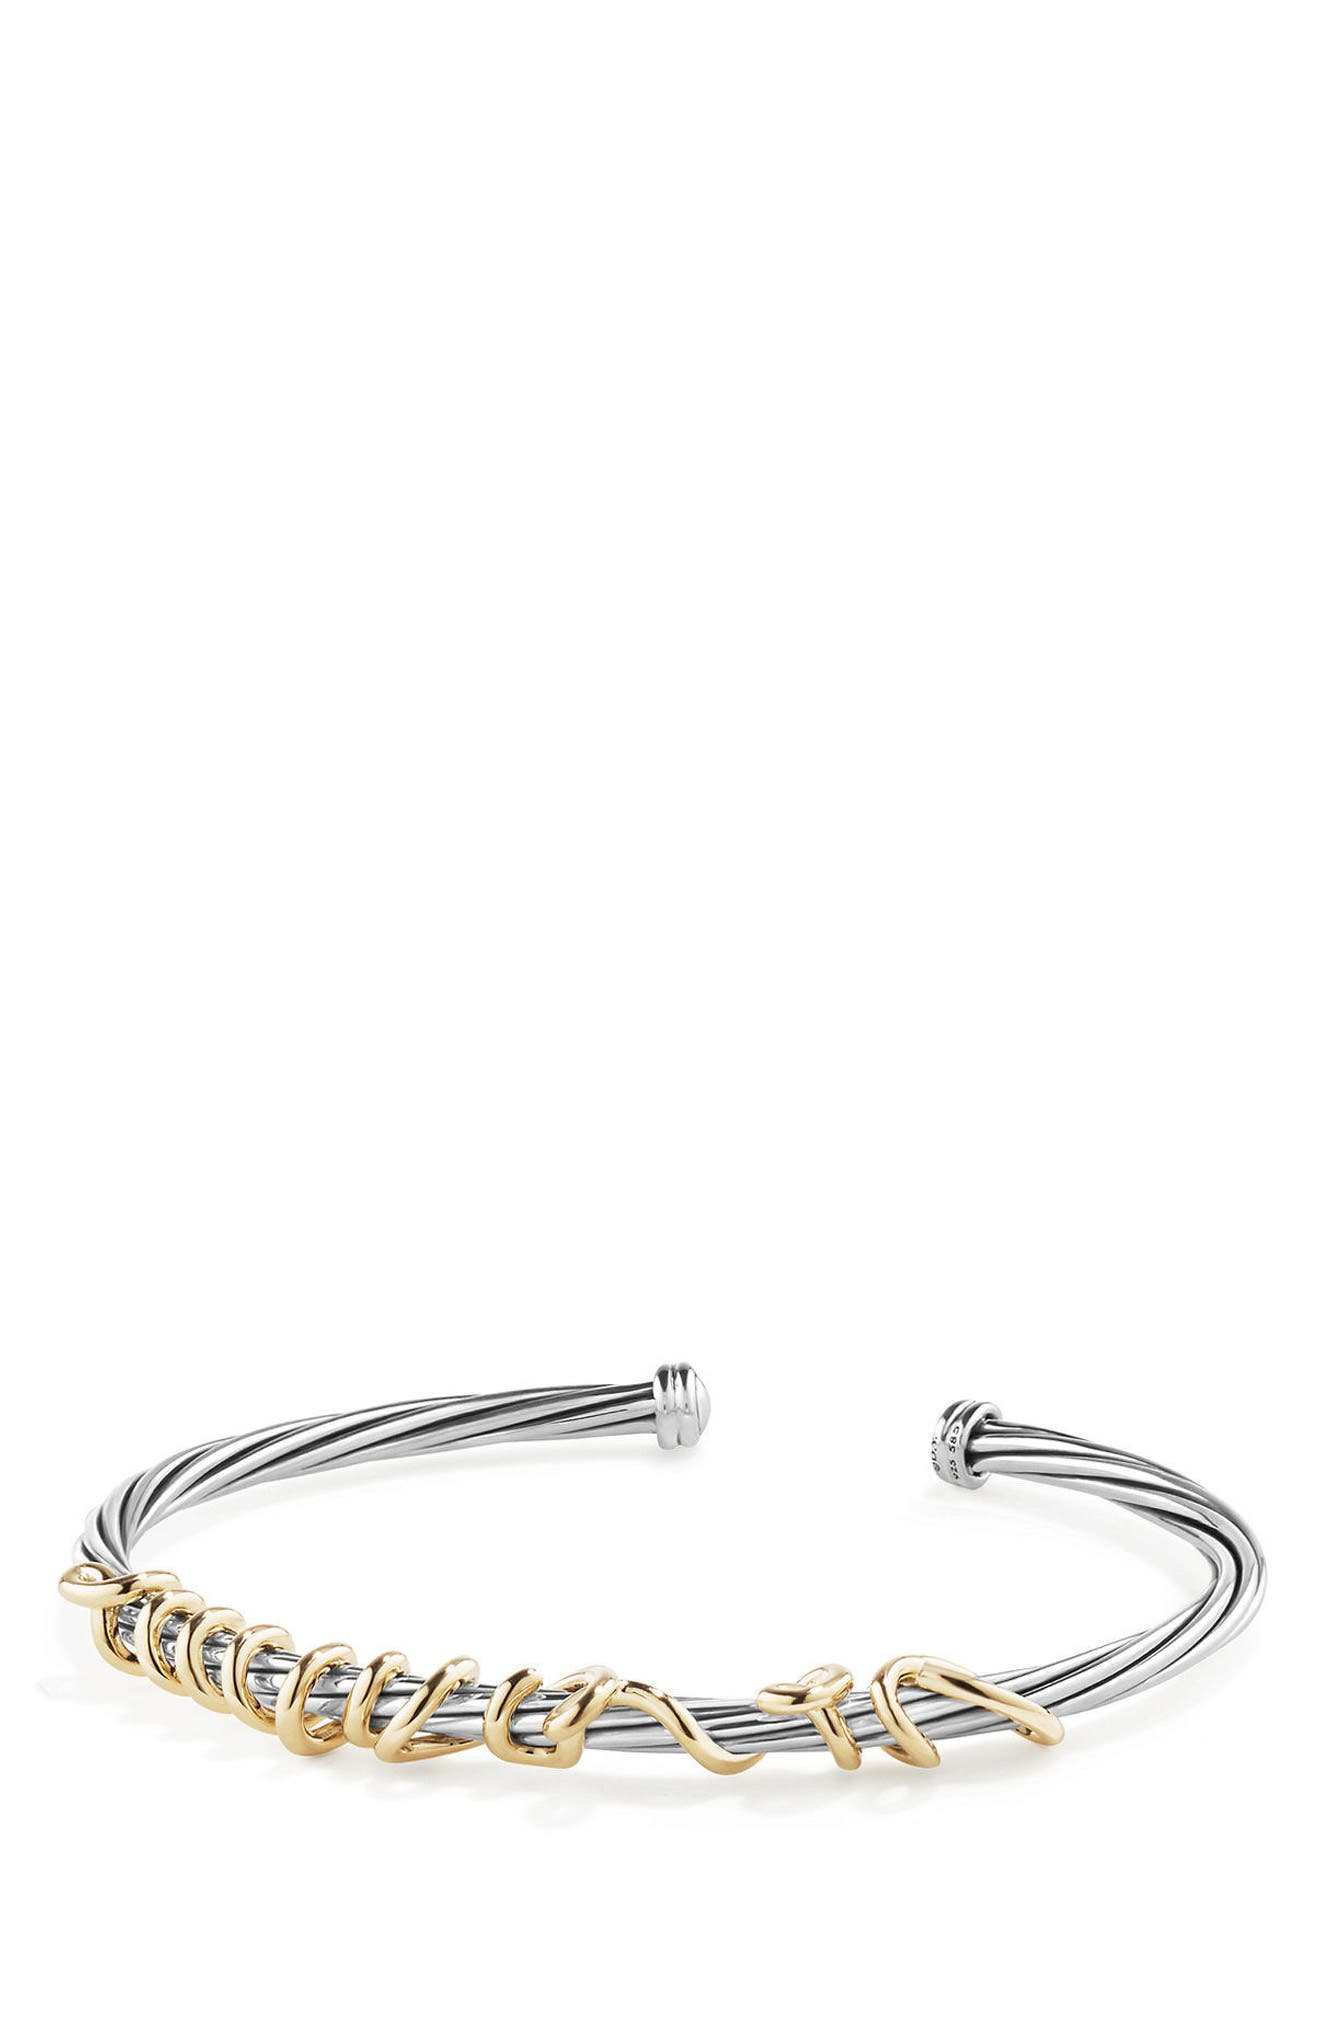 DAVID YURMAN DY Whispers Je Taime Bracelet with 14k Gold